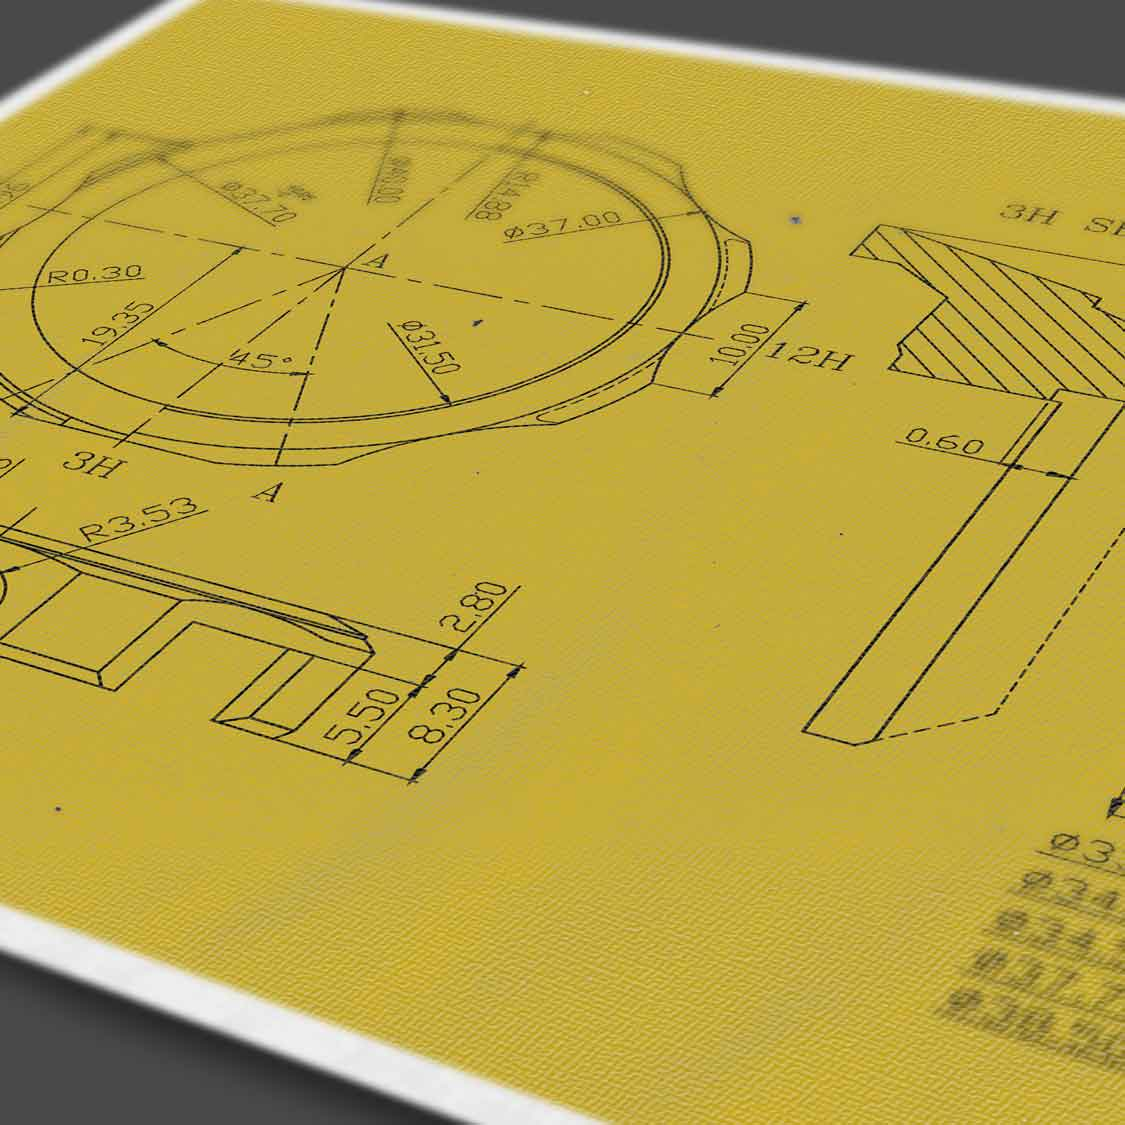 watch designers essex author studios technical drawings